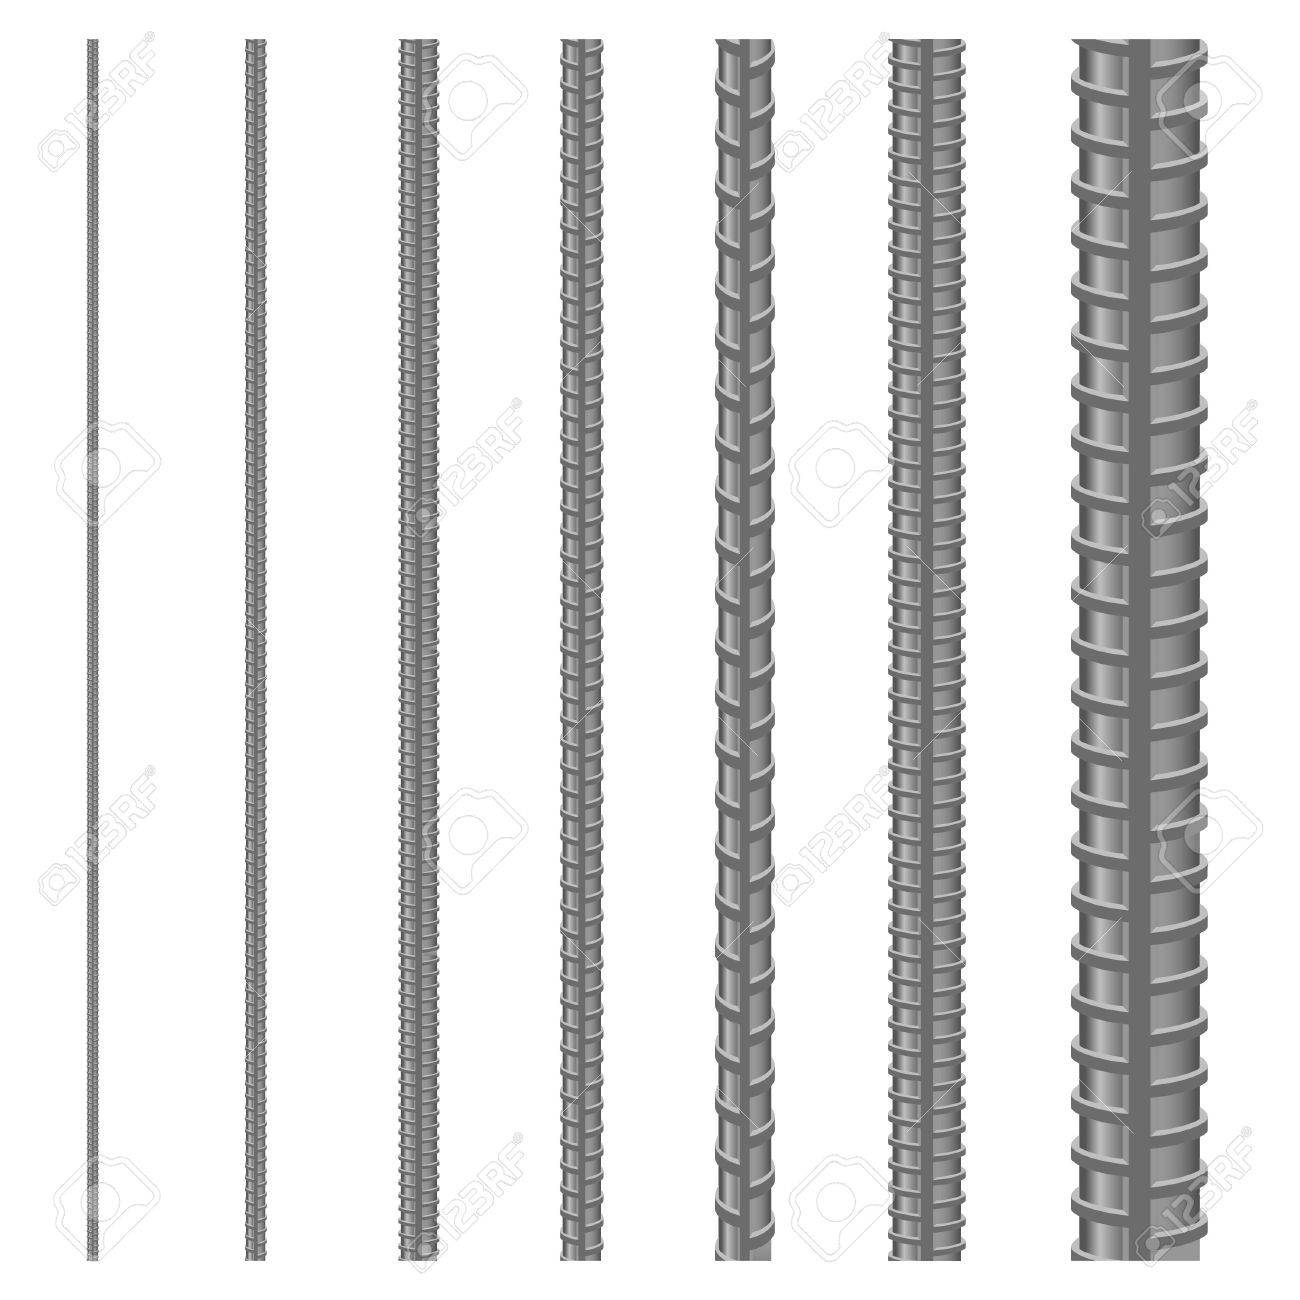 Set of seamless steel rebars, vector illustration